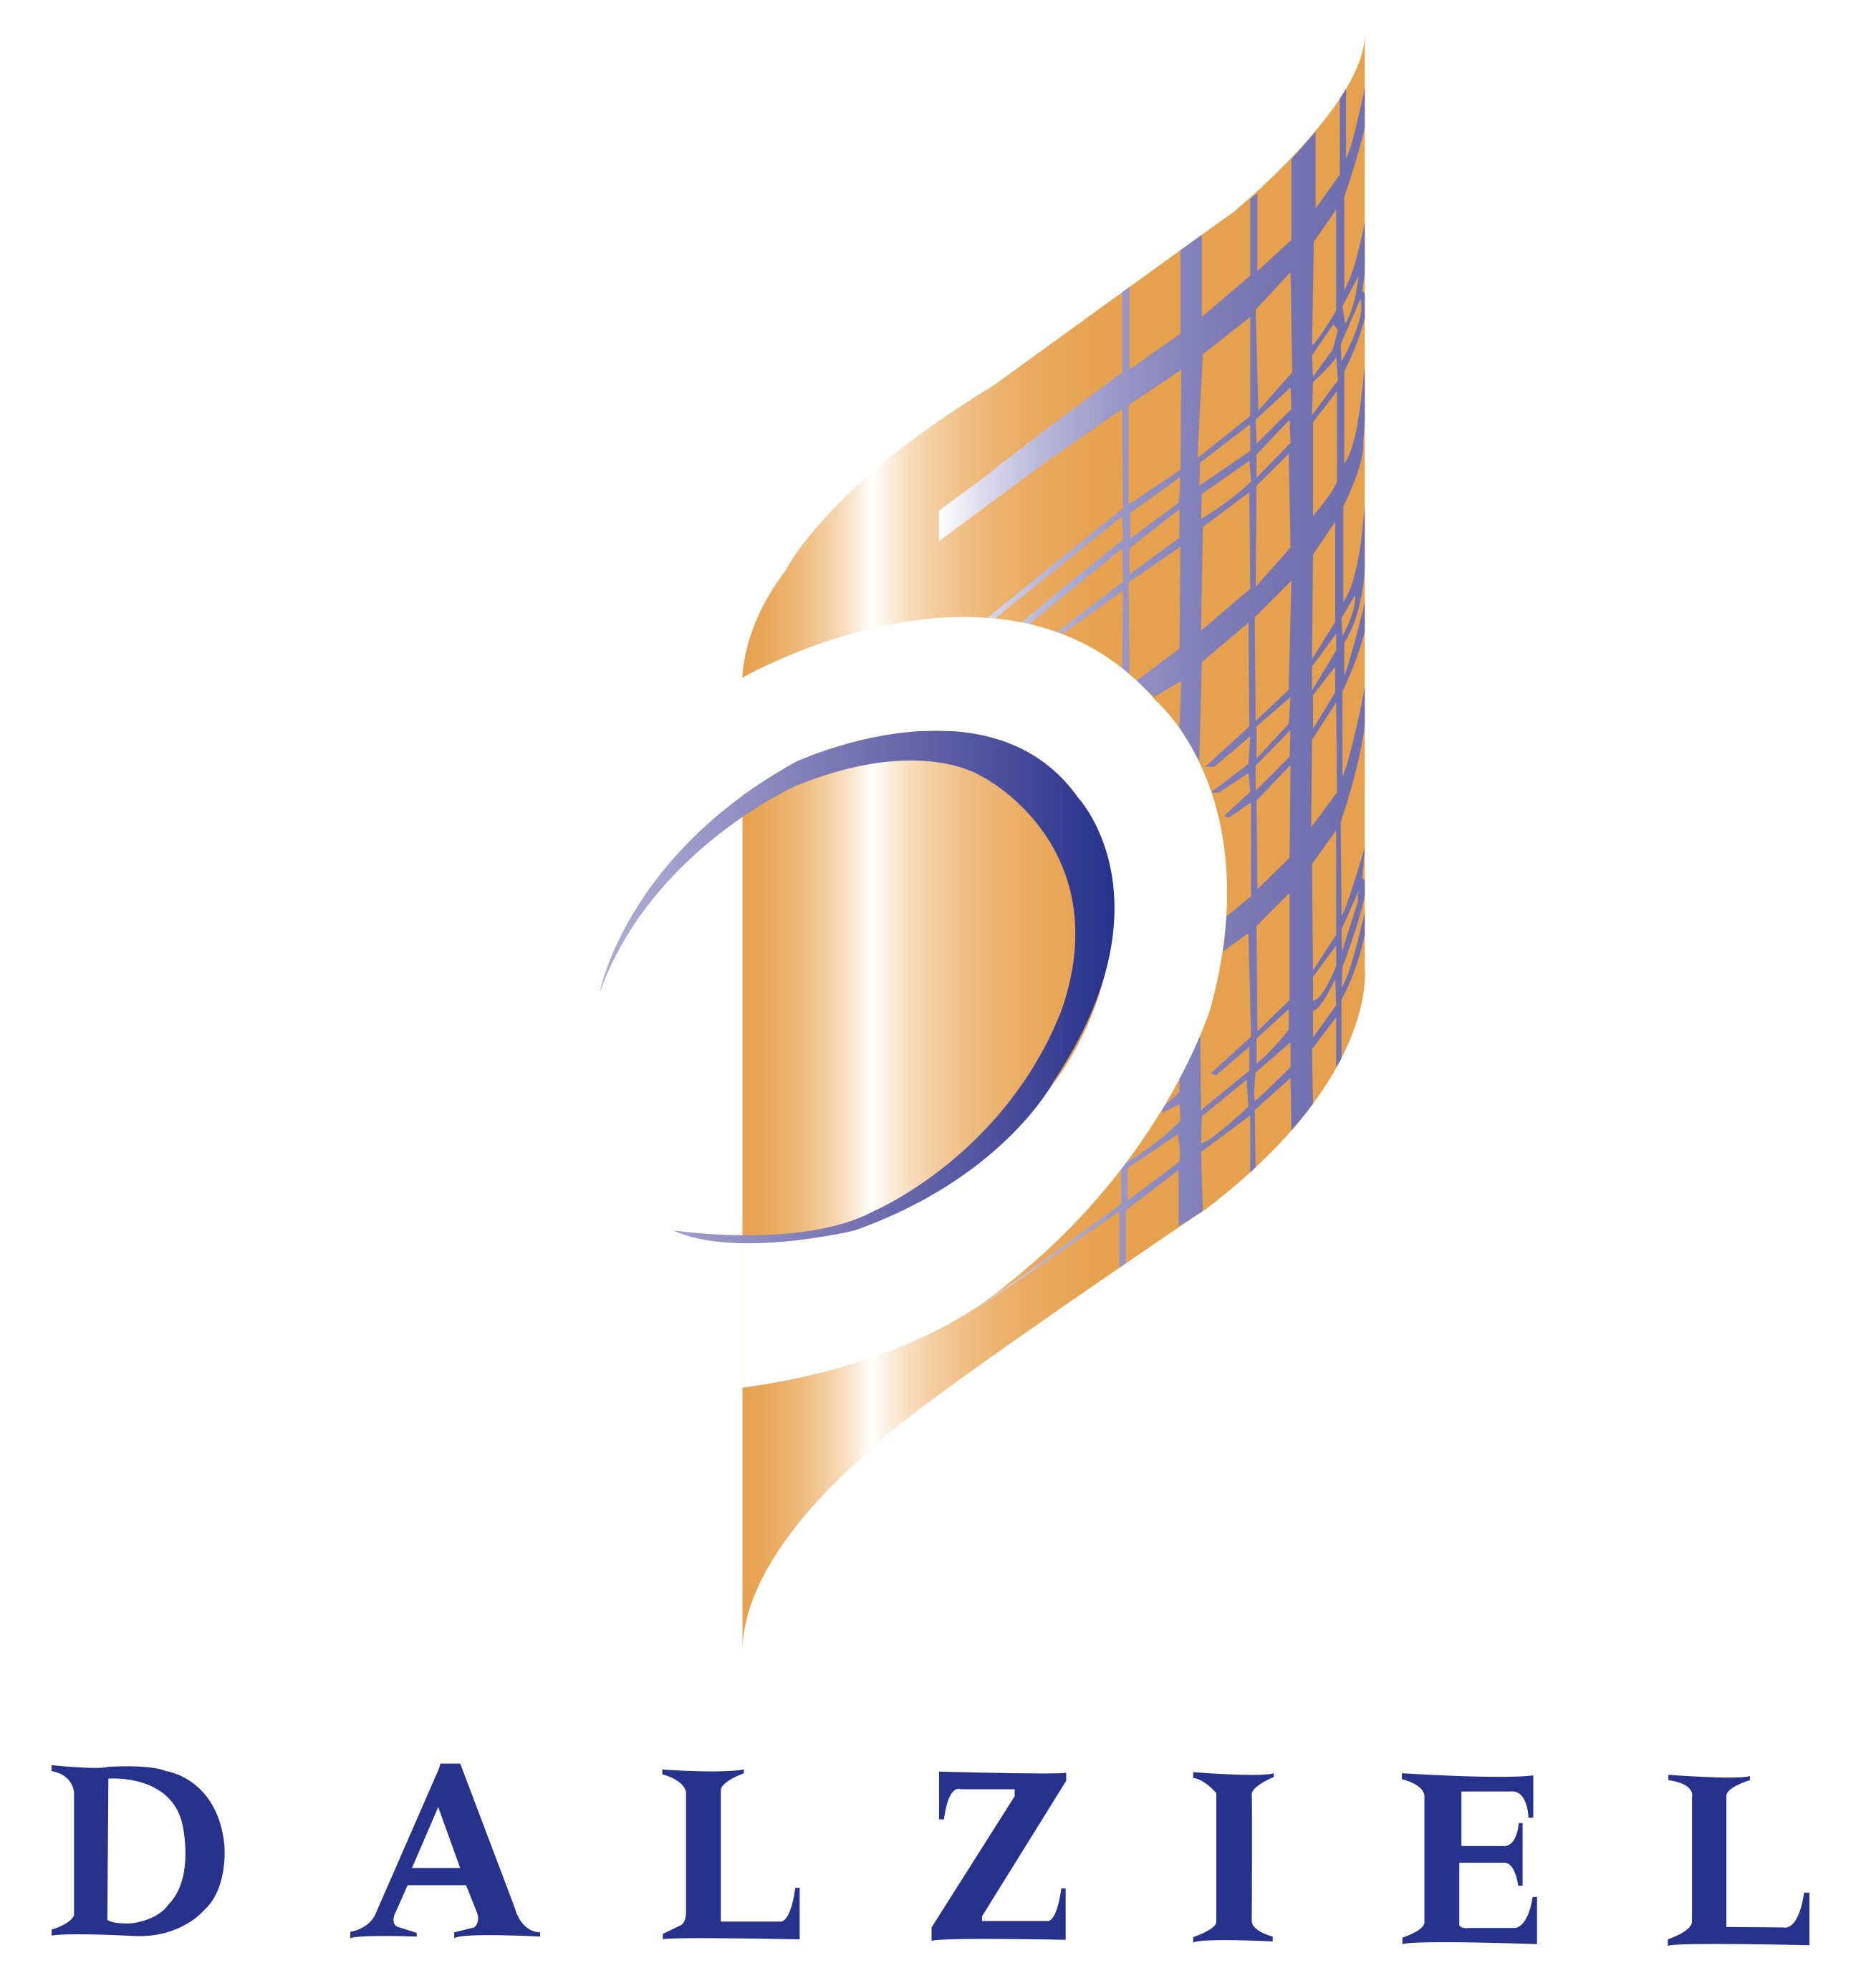 Dalziel – Dalziel – serving meat processing and retail butchery industry